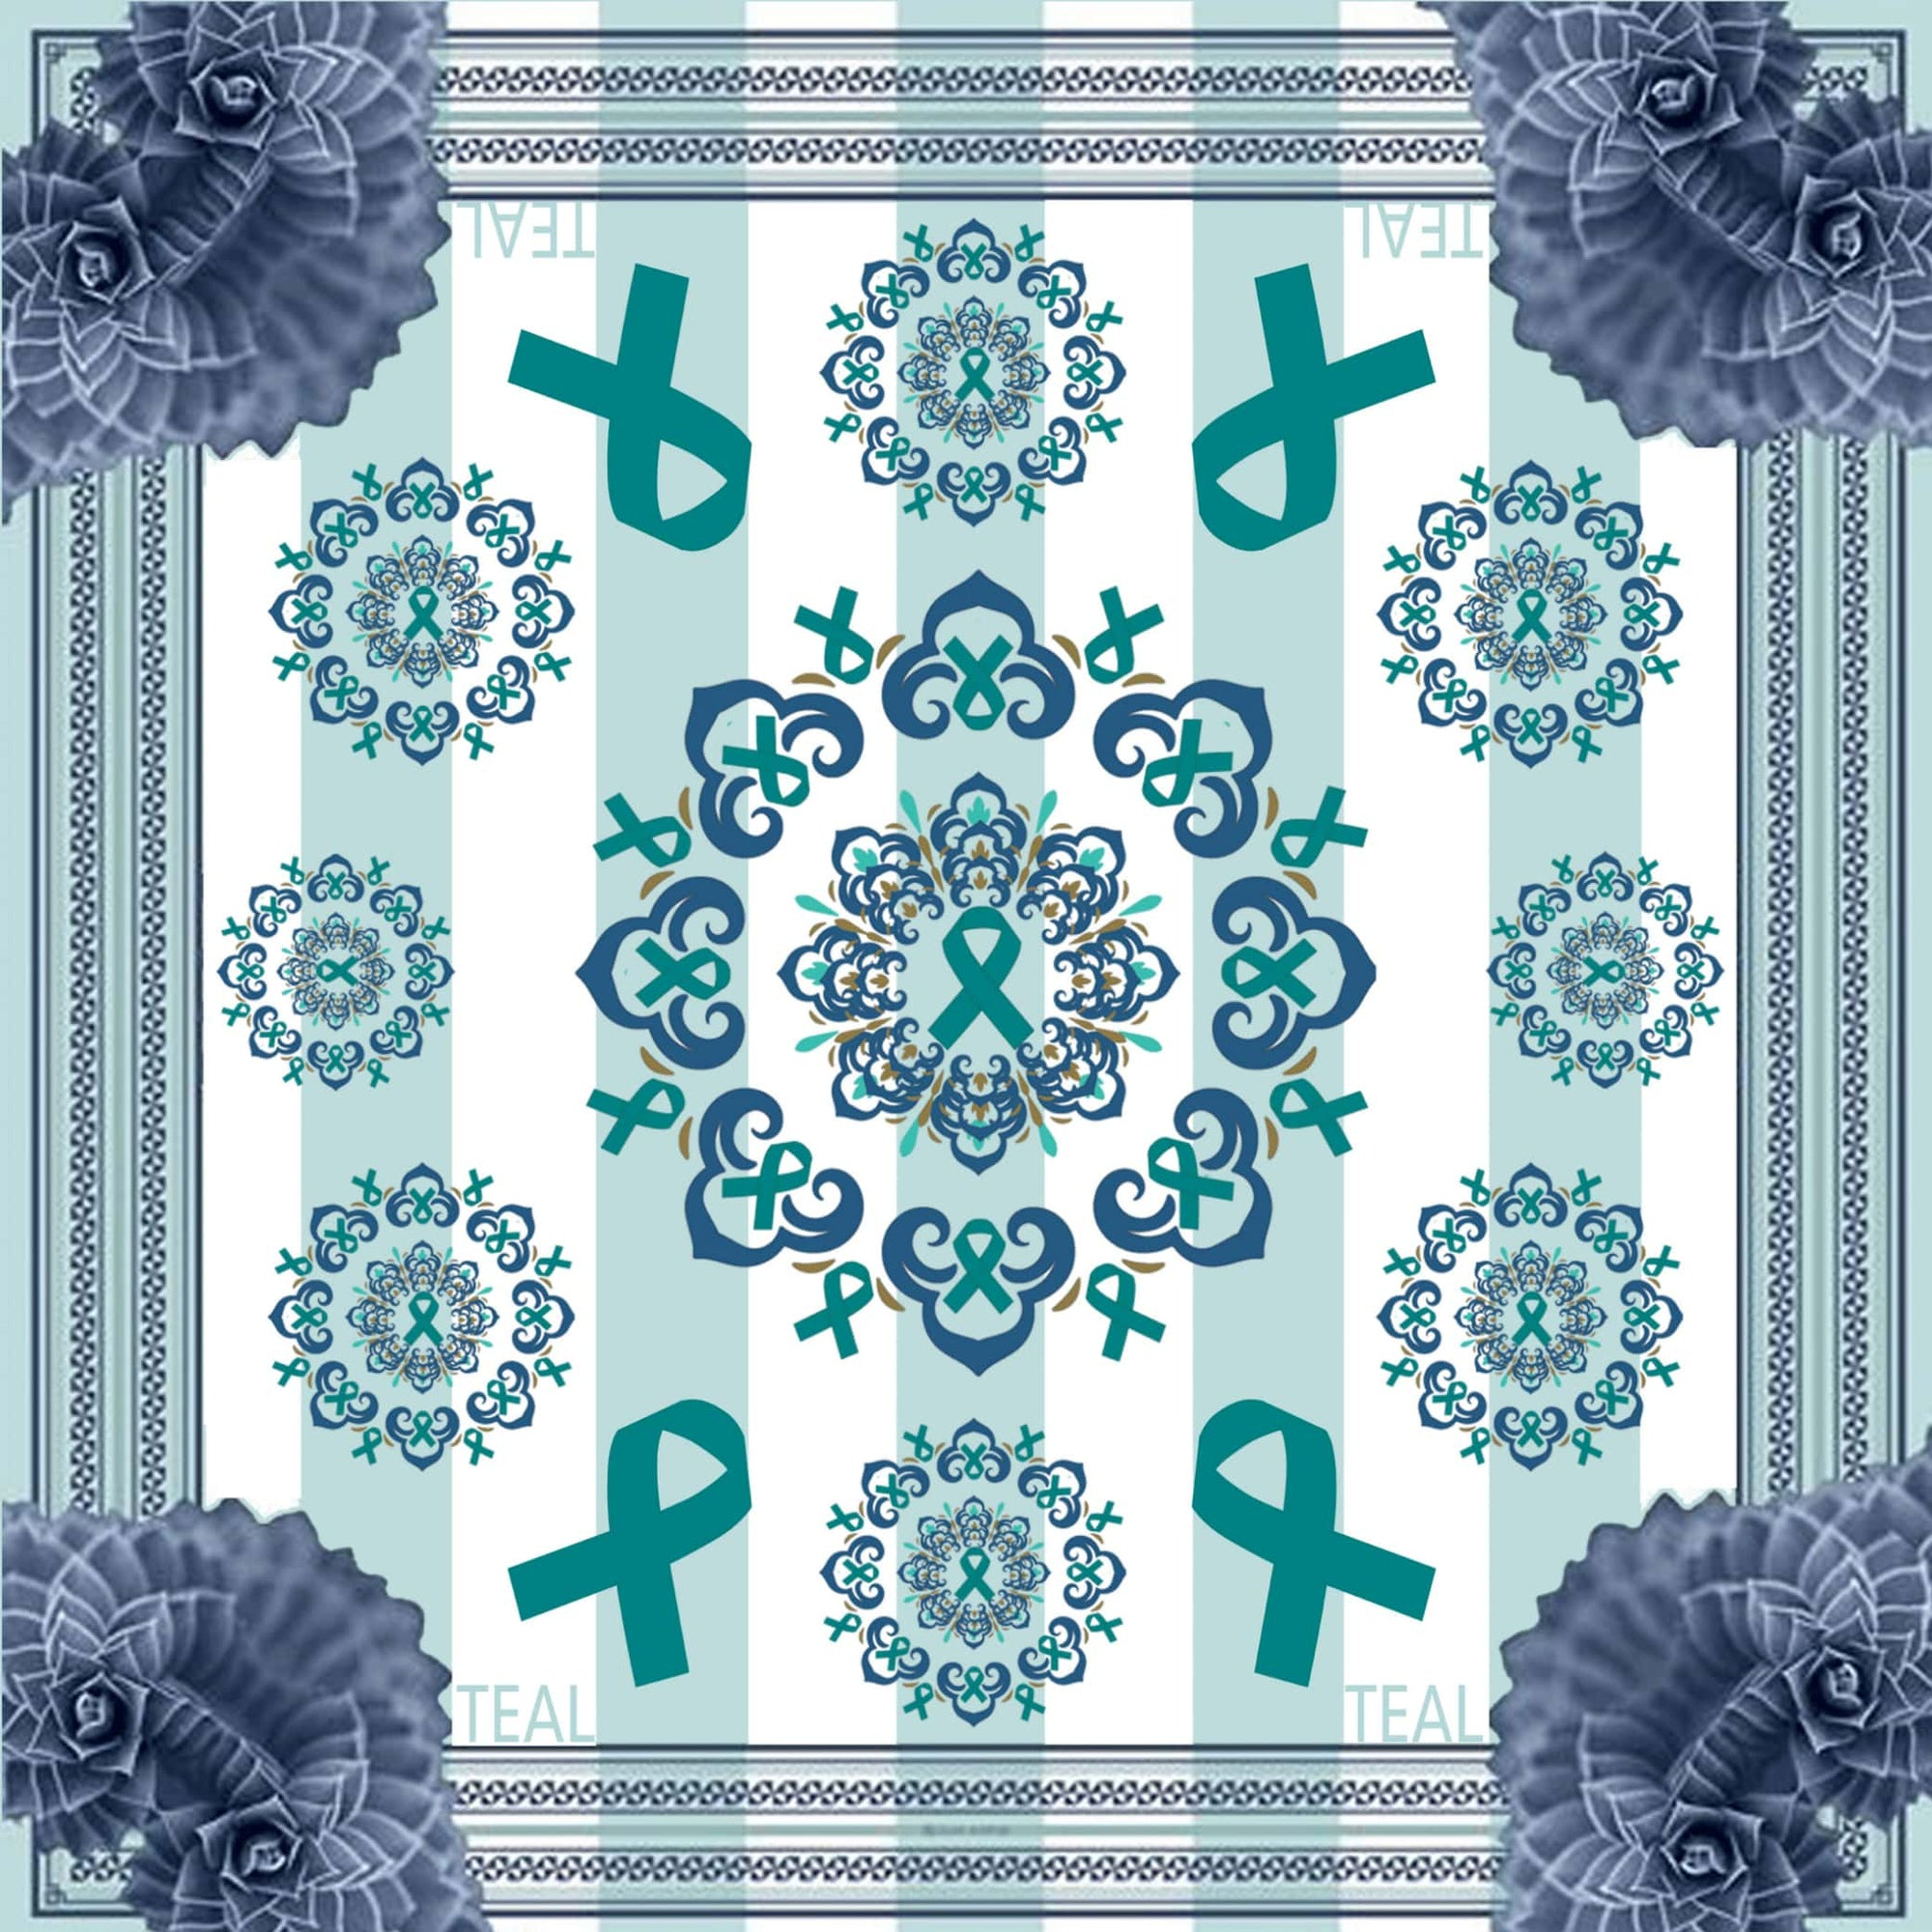 TEAL - Purple Flowers Print